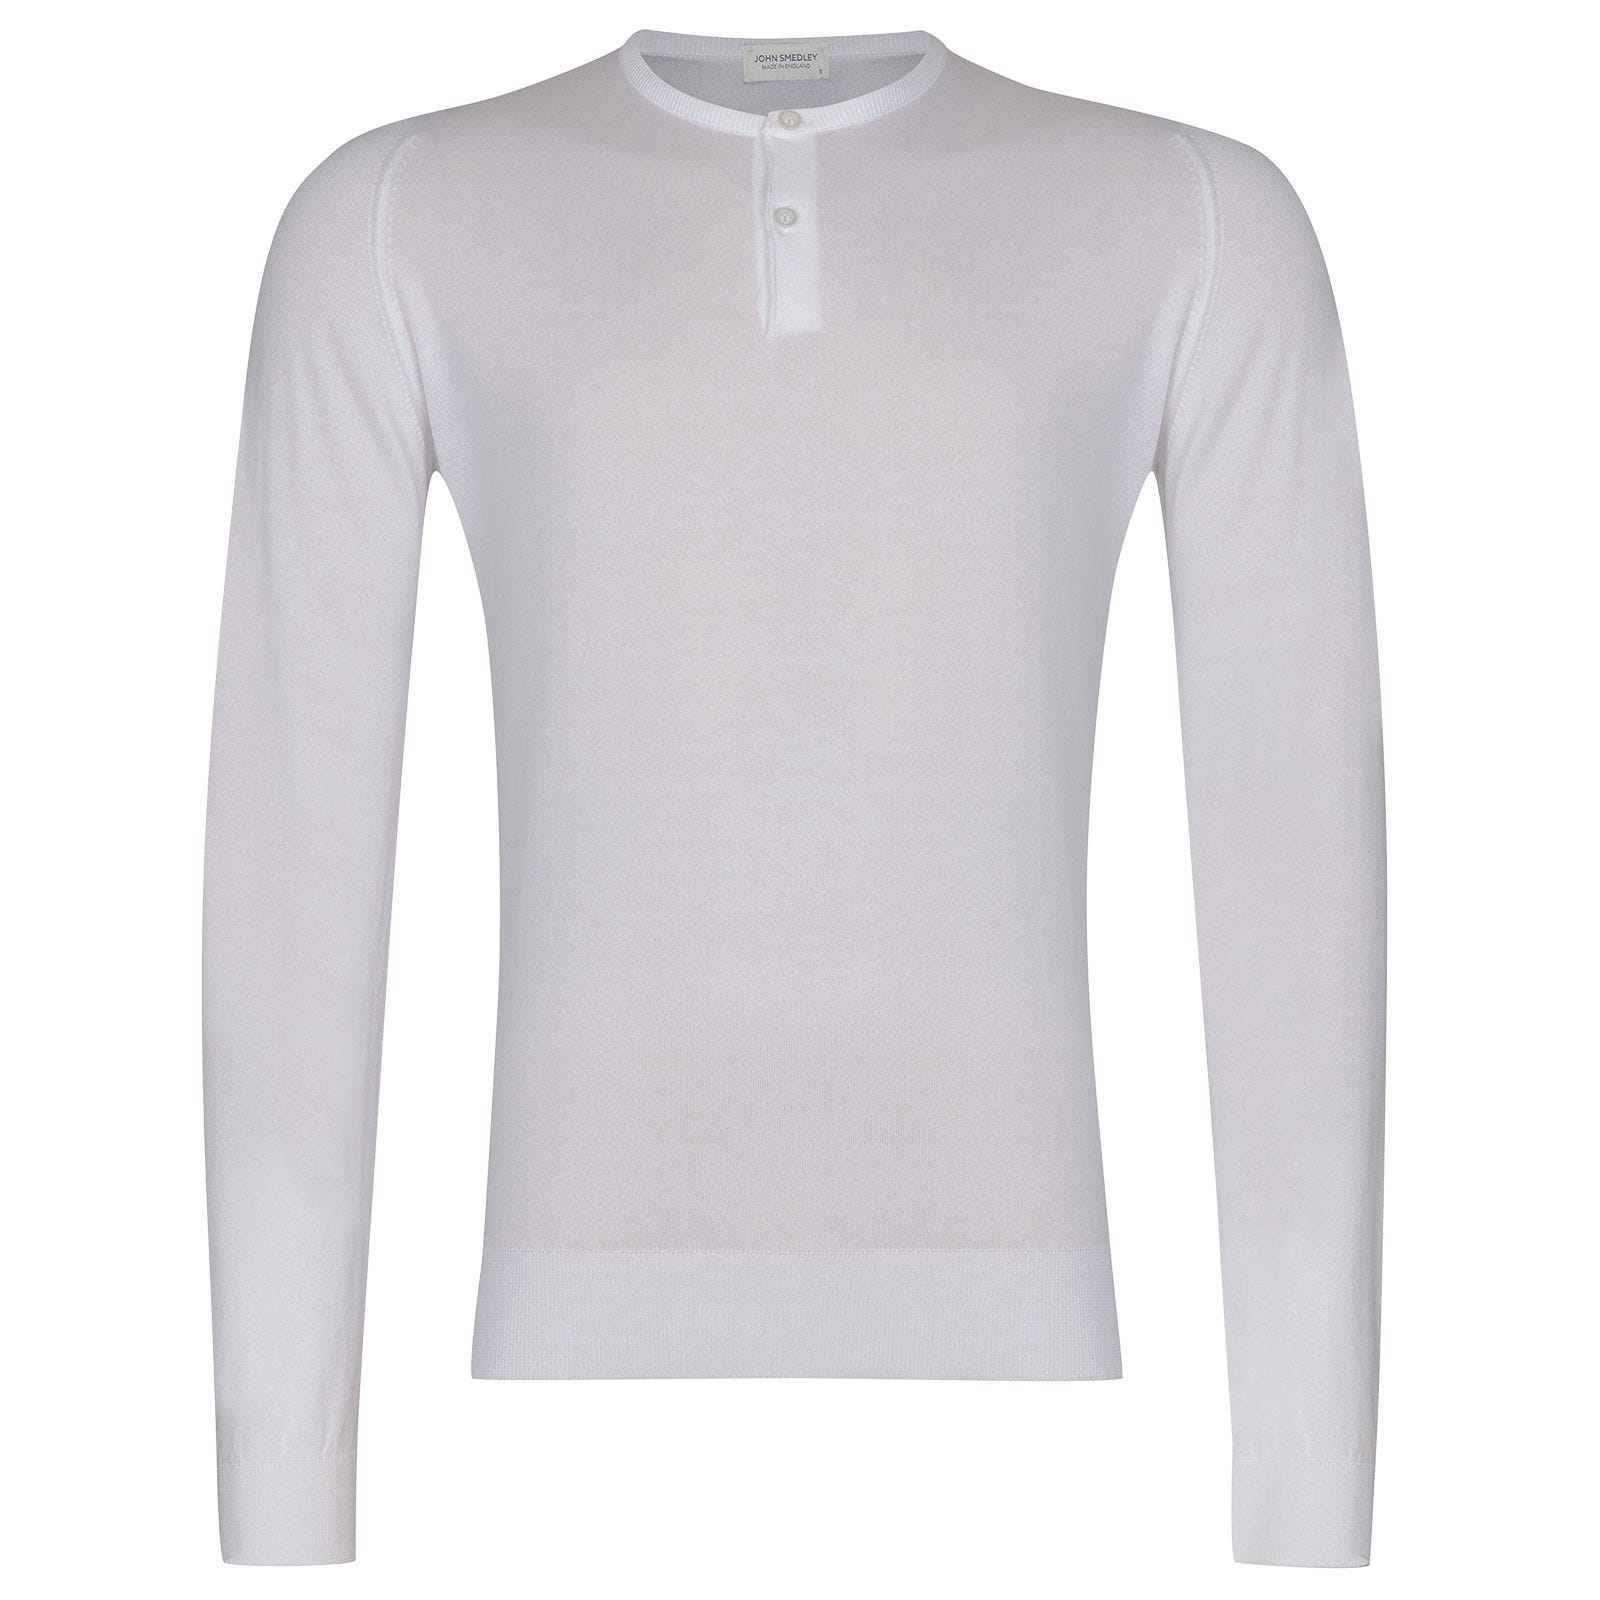 John Smedley Wembury Sea Island Cotton Pullover in White-S